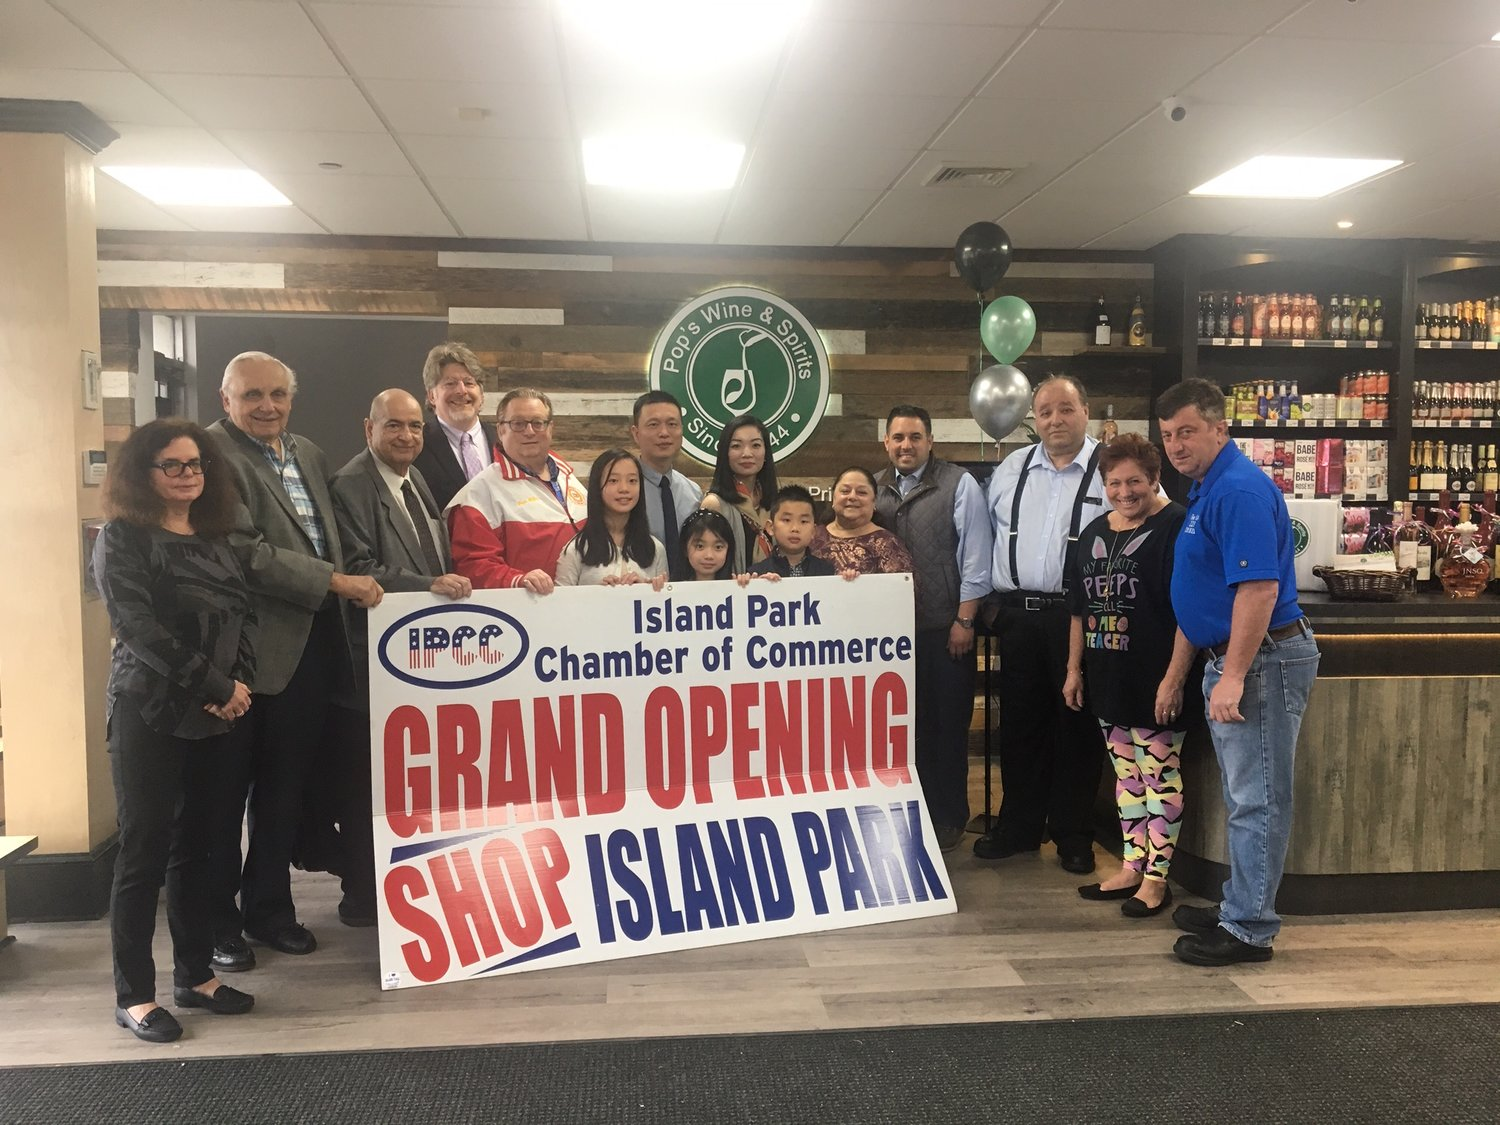 After being operated by the Poulos family for more than 70 years, Pop's Wine & Spirits' new owners, Chu and Ting Lin, celebrated its reopening with a ribbon-cutting last Saturday, which was attended by residents, elected officials and members of the Island Park Chamber of Commerce.